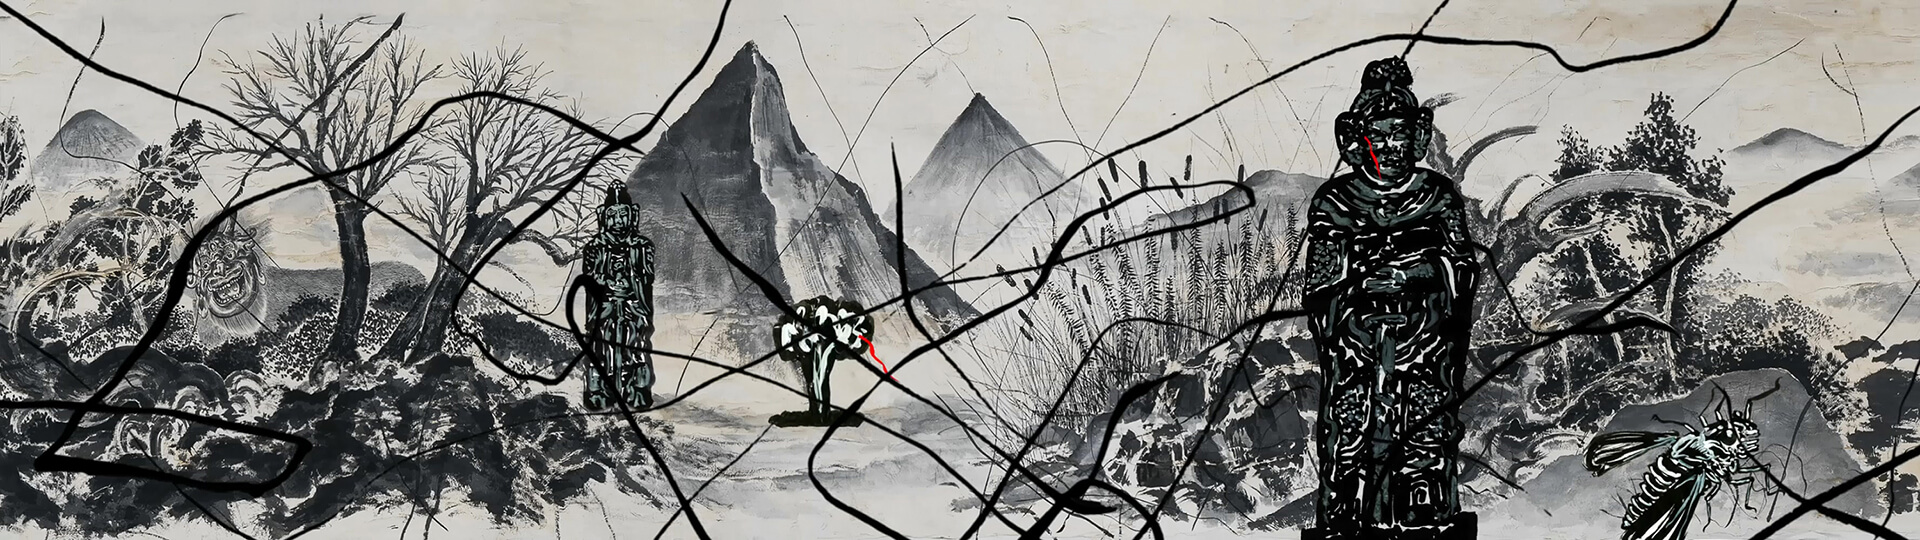 Sun Xun, Mythological Time, 2016, 2-channel colour video animation with sound, Collection of the Vancouver Art Gallery, Gift of The Solomon R. Guggenheim Foundation in connection with The Robert H. N. Ho Family Foundation Chinese Art Initiative